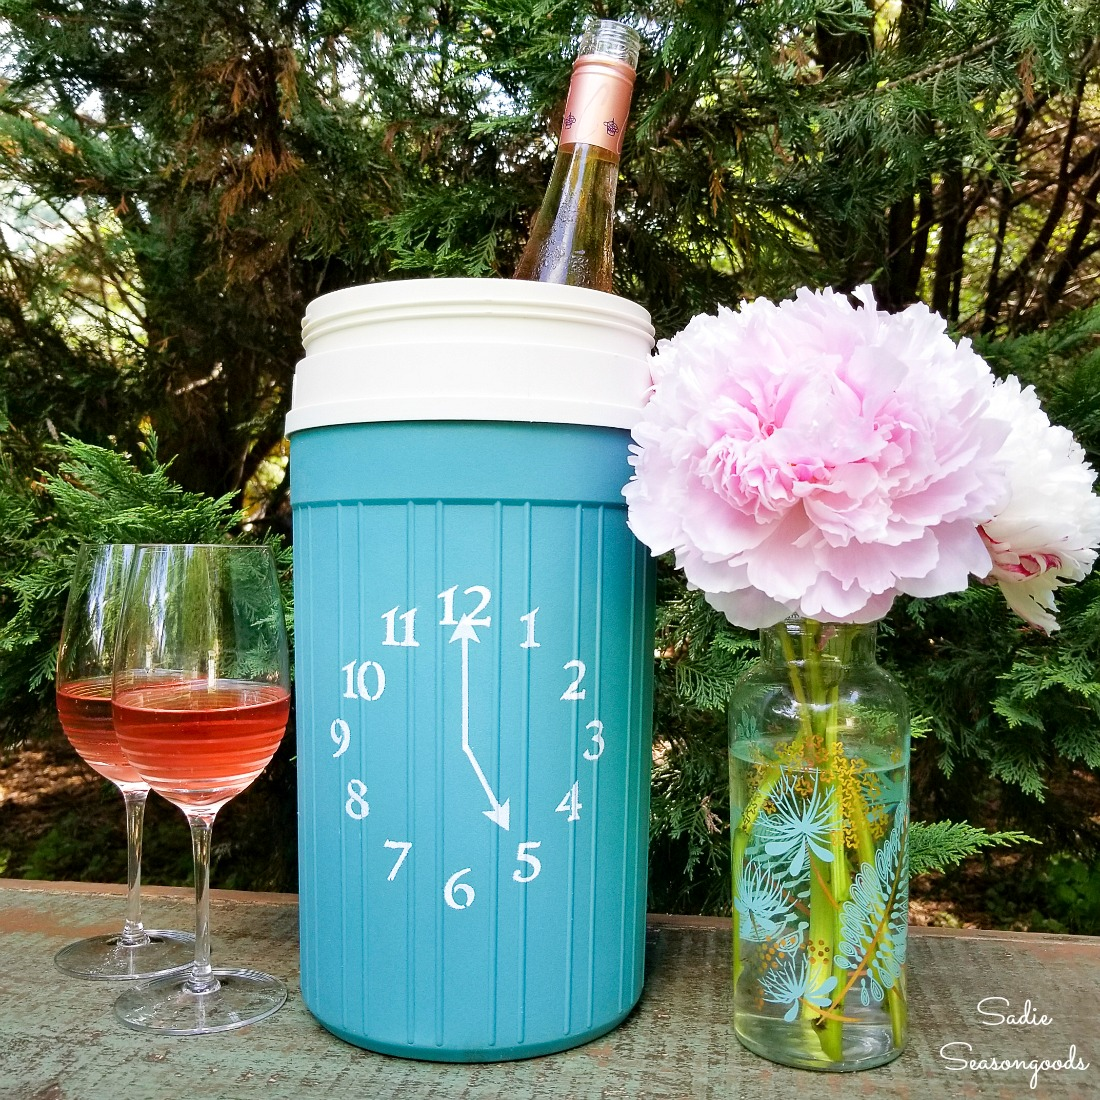 Wine bottle cooler for a patio happy hour from an Igloo beverage cooler